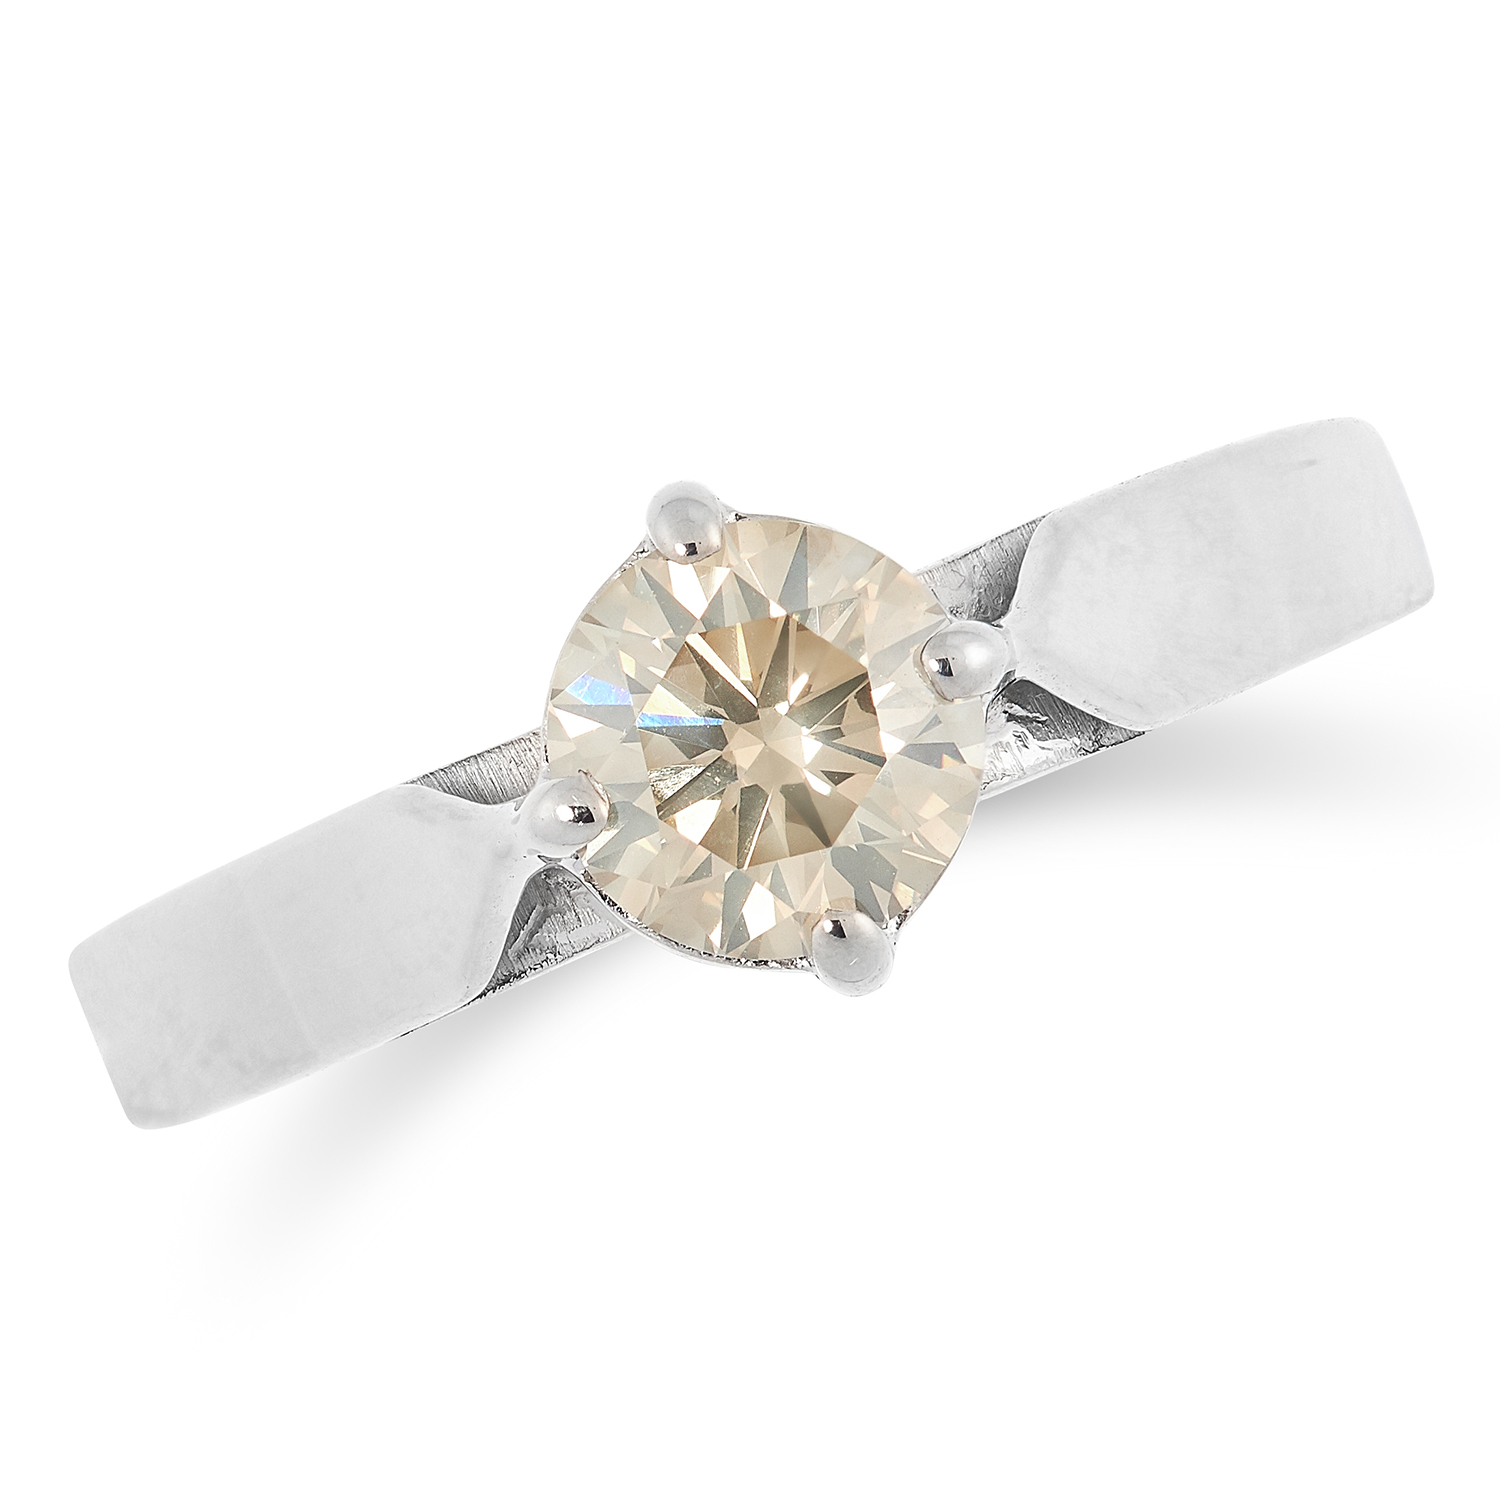 DIAMOND SOLITAIRE RING set with a round cut diamond of approximately 1.00 carat, size R / 8, 4.2g.